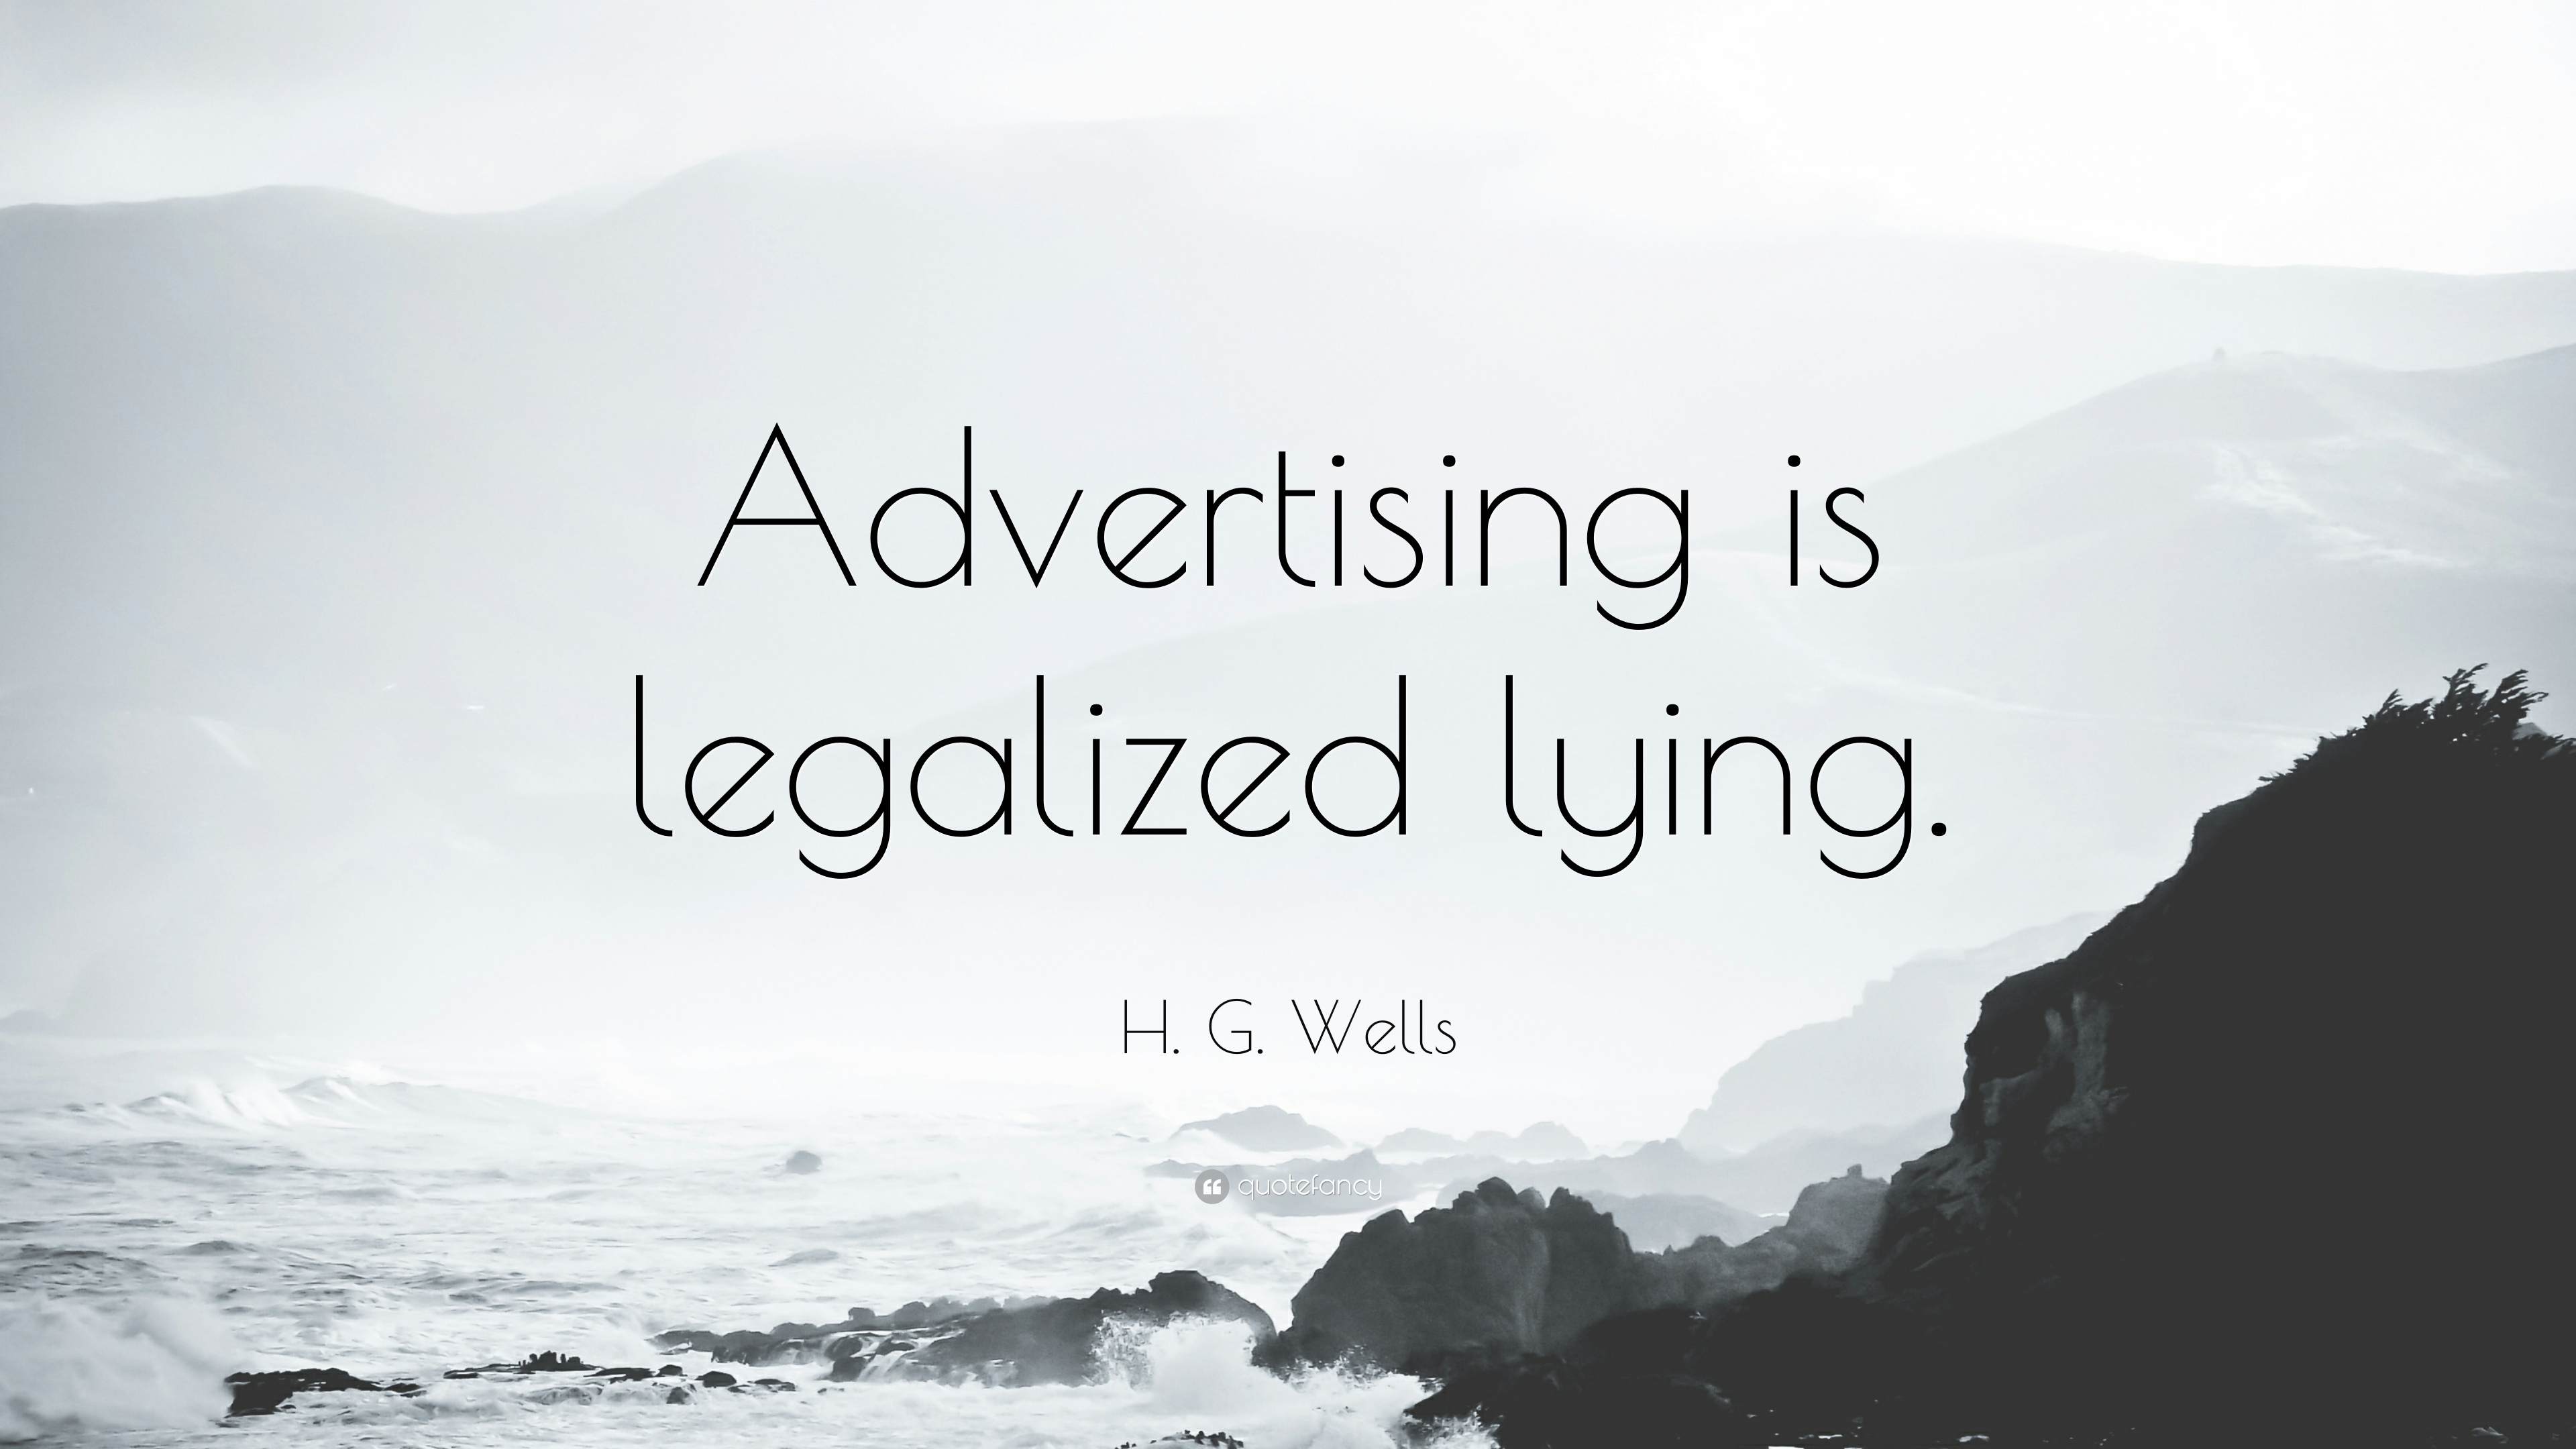 advertising is legalised form of lying Advertising is legalized form of lying - download as word doc (doc), pdf file (pdf), text file (txt) or read online.